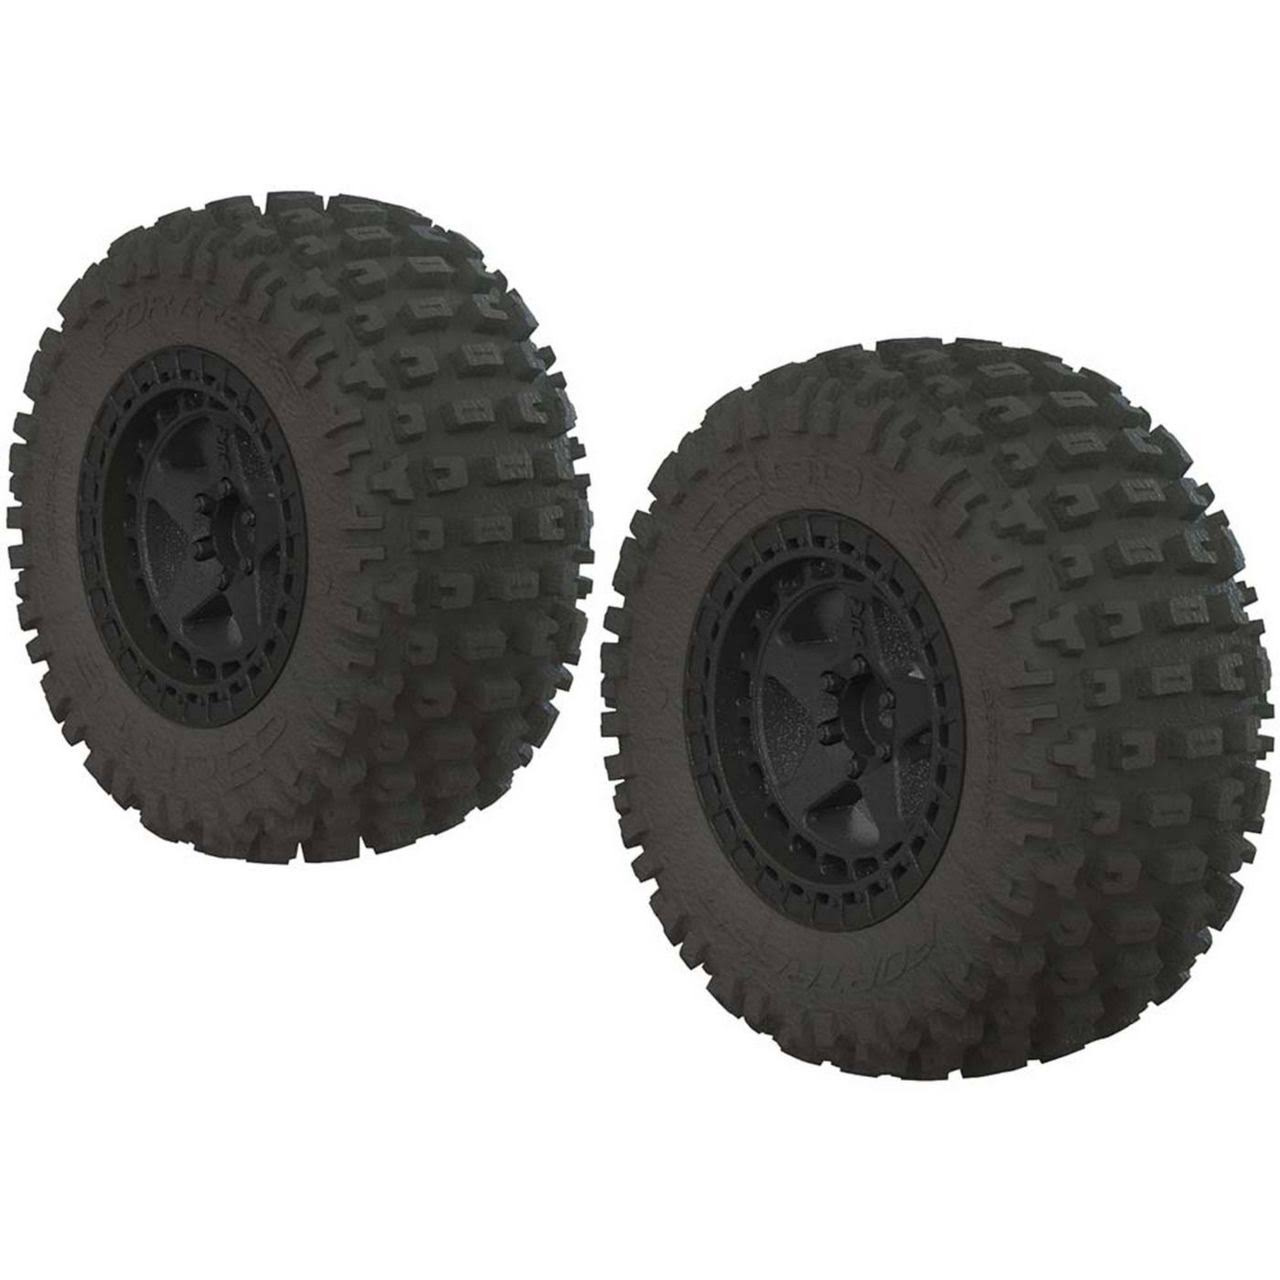 ARRMA Booots Fortress SC Tire Set - Glued, Black, 2ct